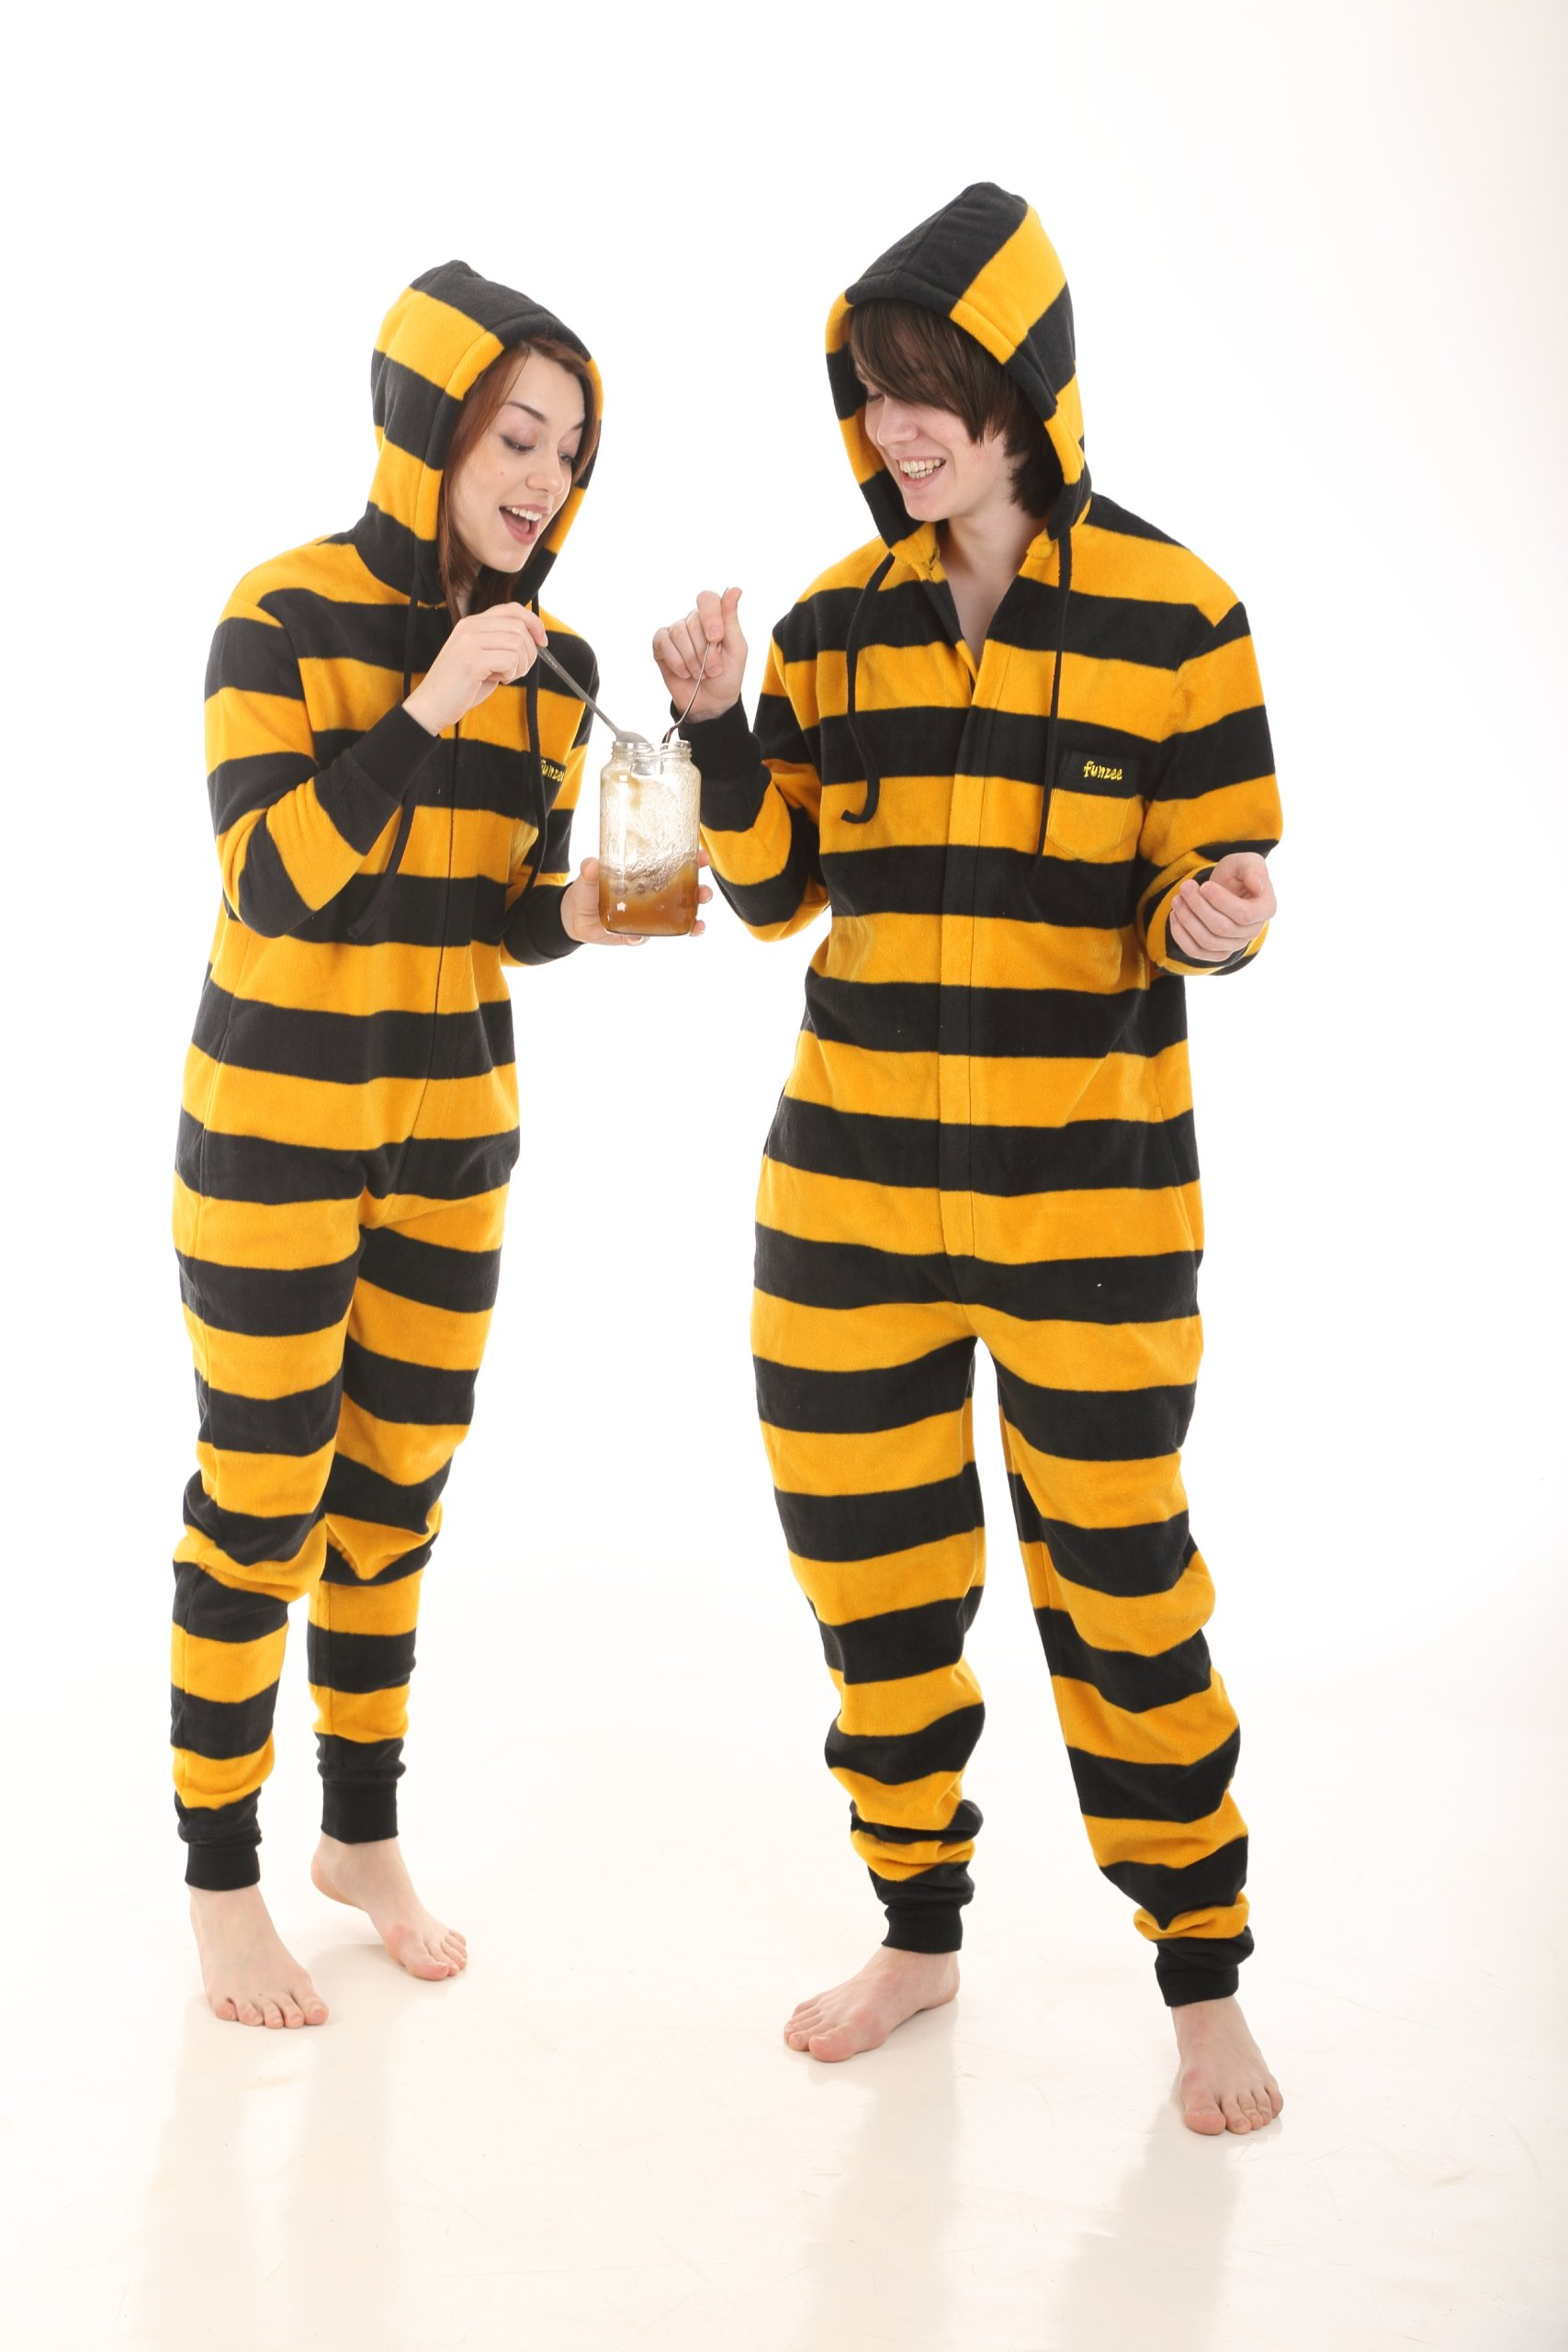 AliExpress carries many adult onesie long sleeve related products, including short sleeve onesie bear, animal short sleeve onesie, dinosaur short sleeved onesie, kigurumi pajamas short sleeve, adult costumes long sleeve, long sleeve adult costume, adult costume long sleeve, short sleeve onesies adults, long john pajamas girls.